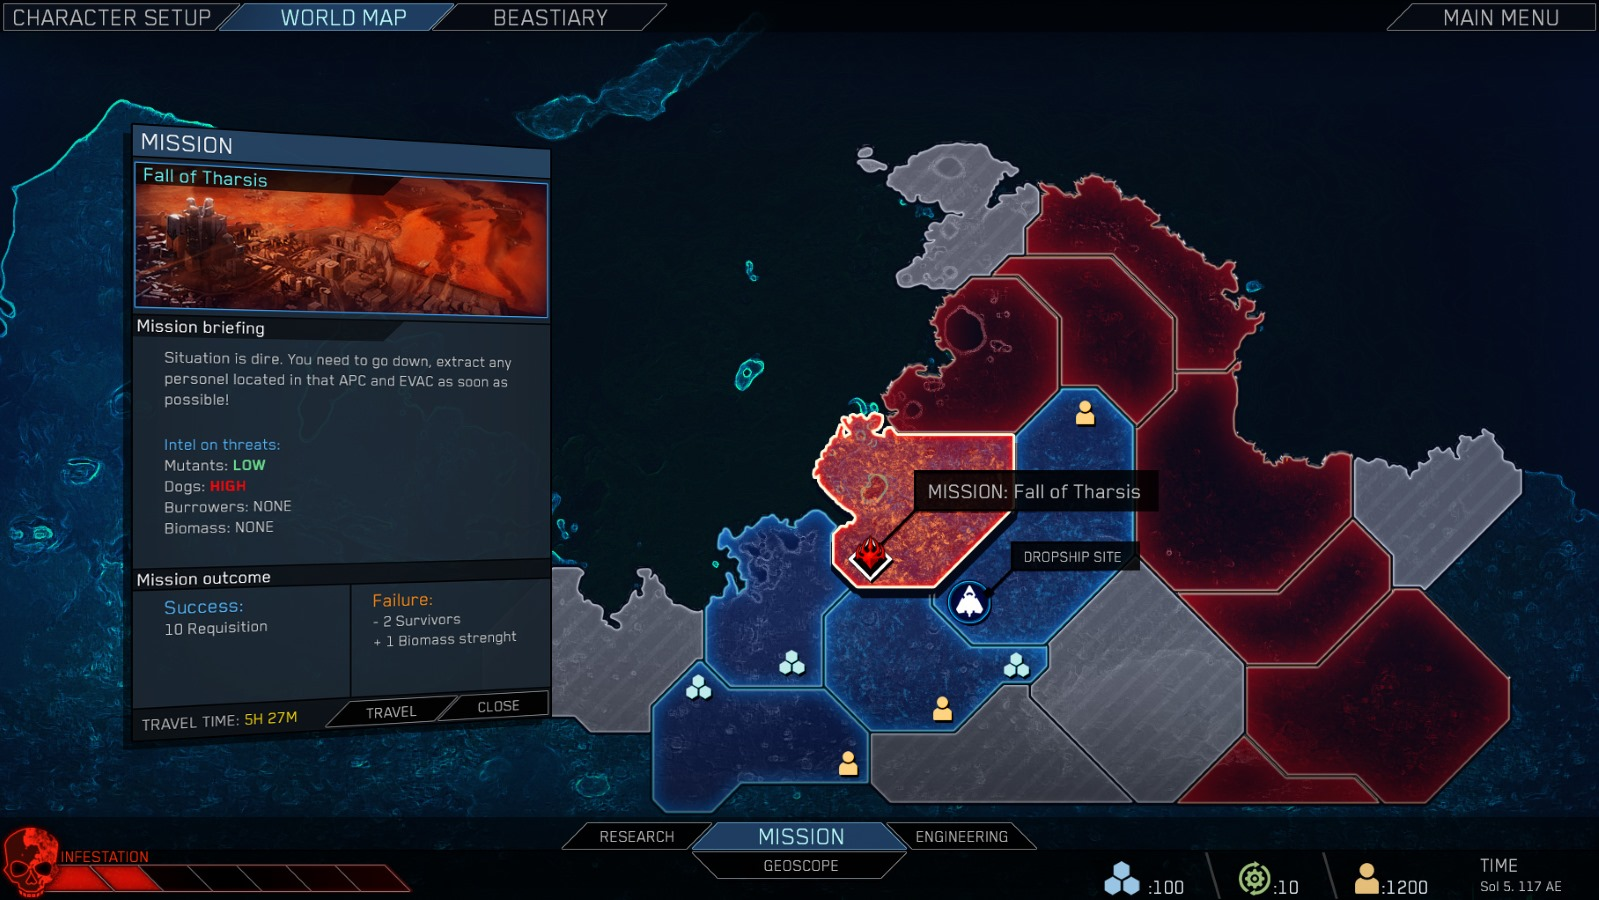 The new campaign map for The Red Solstice 2